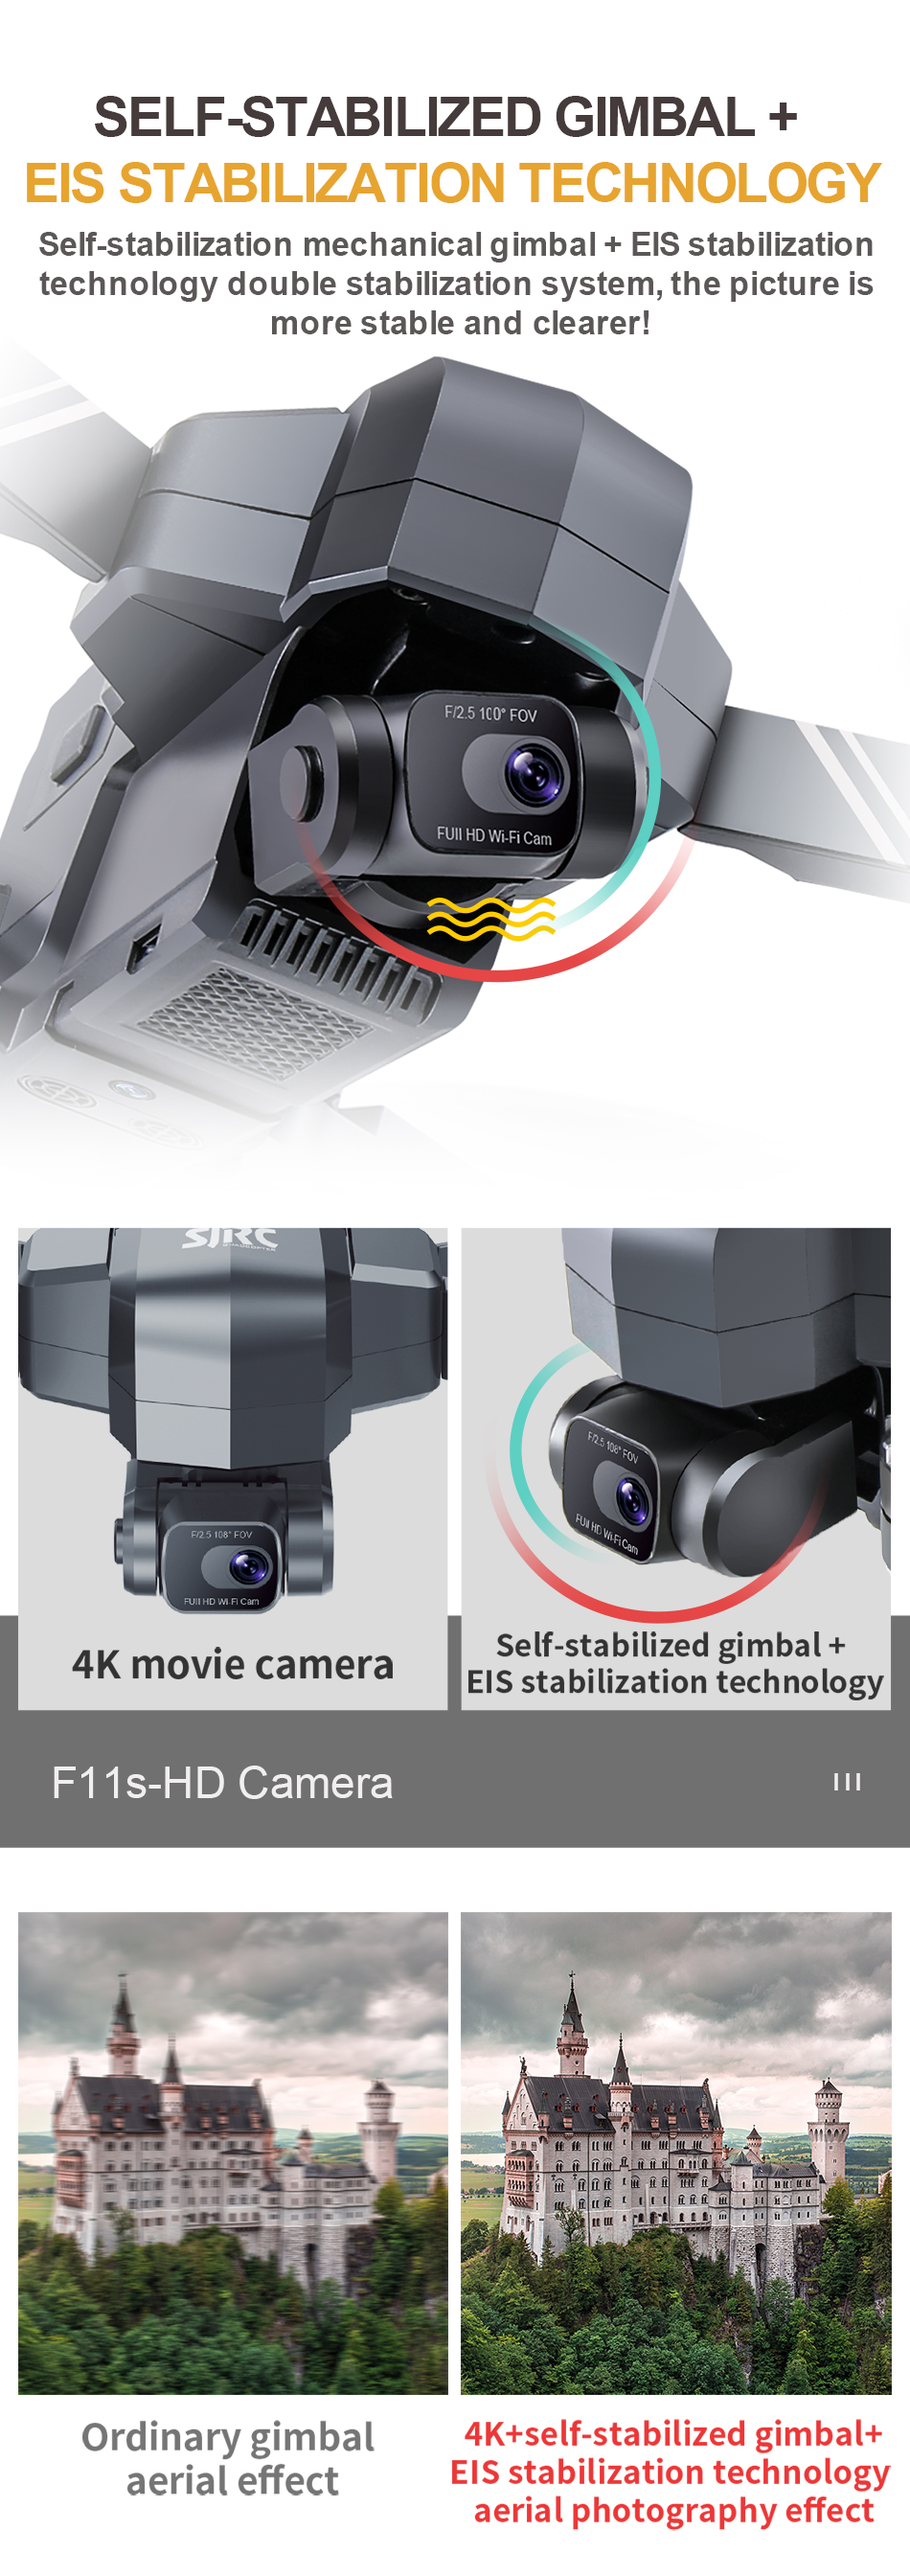 U4bddc6538f954f988acdca0c46087c63v - NEW SJRC F11S 4K PRO Video Camera Drone Professional GPS 2Axis Mechanical EIS Gimbal Quadcopter Brushless Dron Max Flight RC 3KM